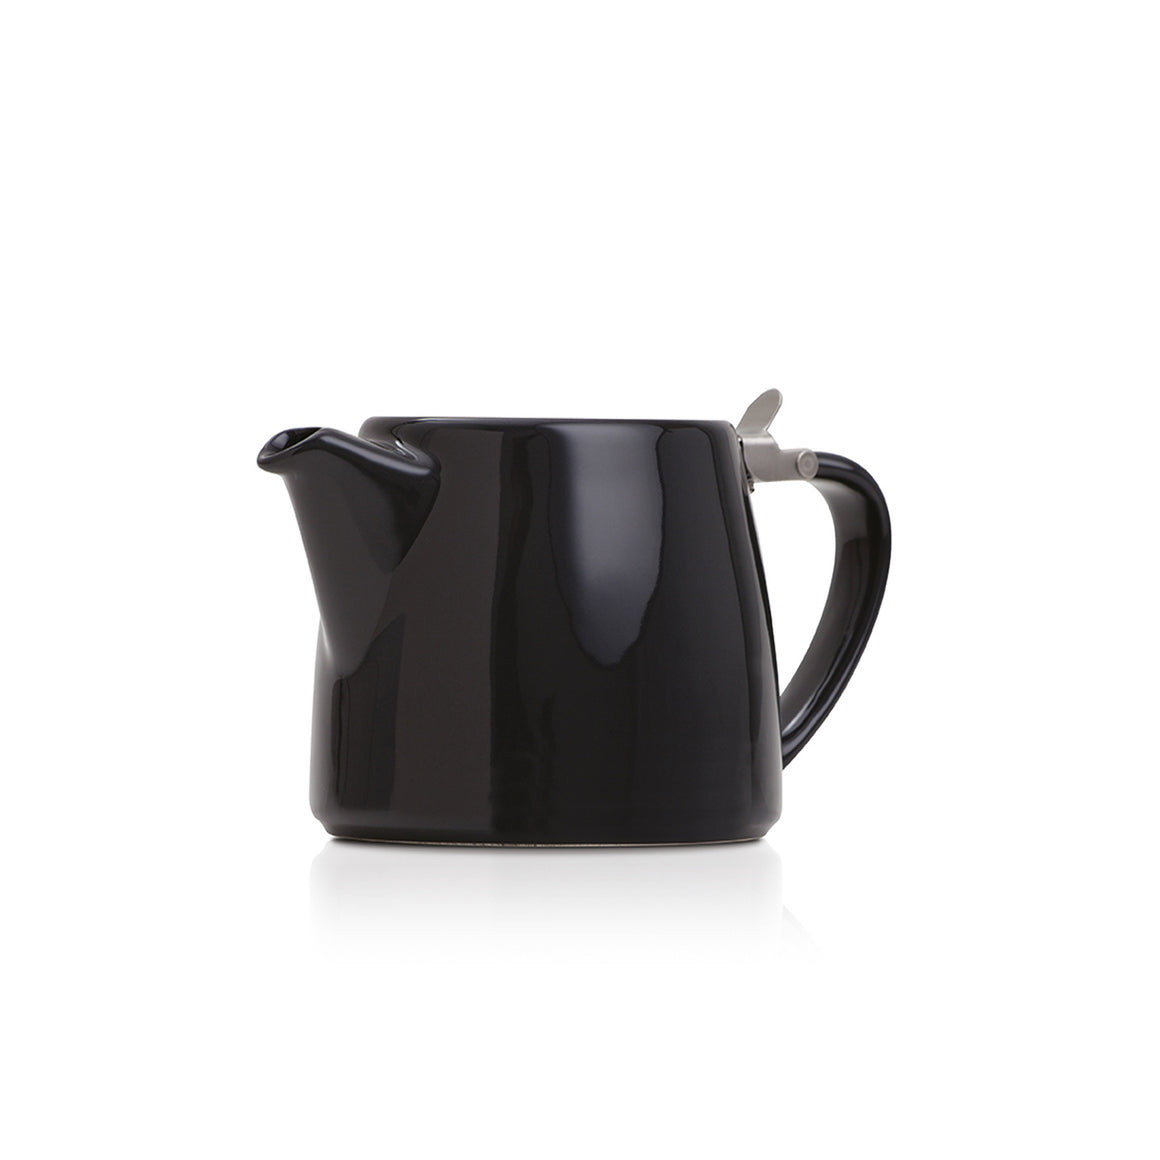 Forlife Charcoal Stump Teapot 18oz